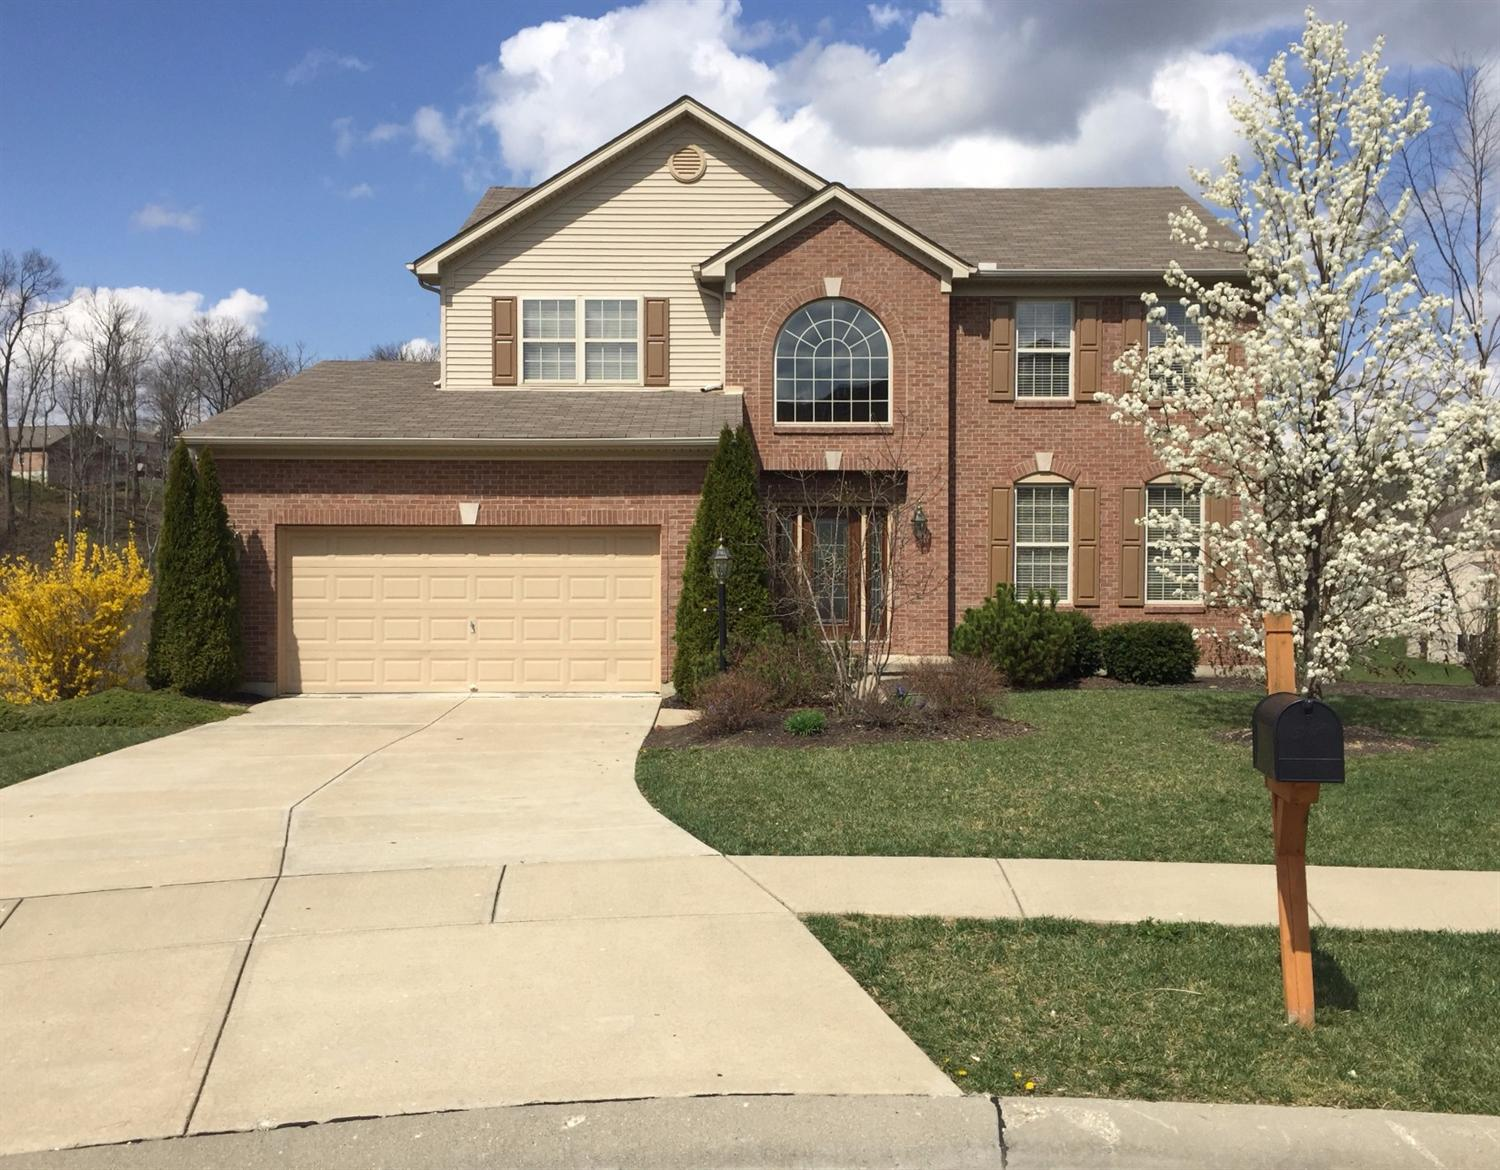 Photo 1 for 1278 Fieldhurst Ct Florence, KY 41042